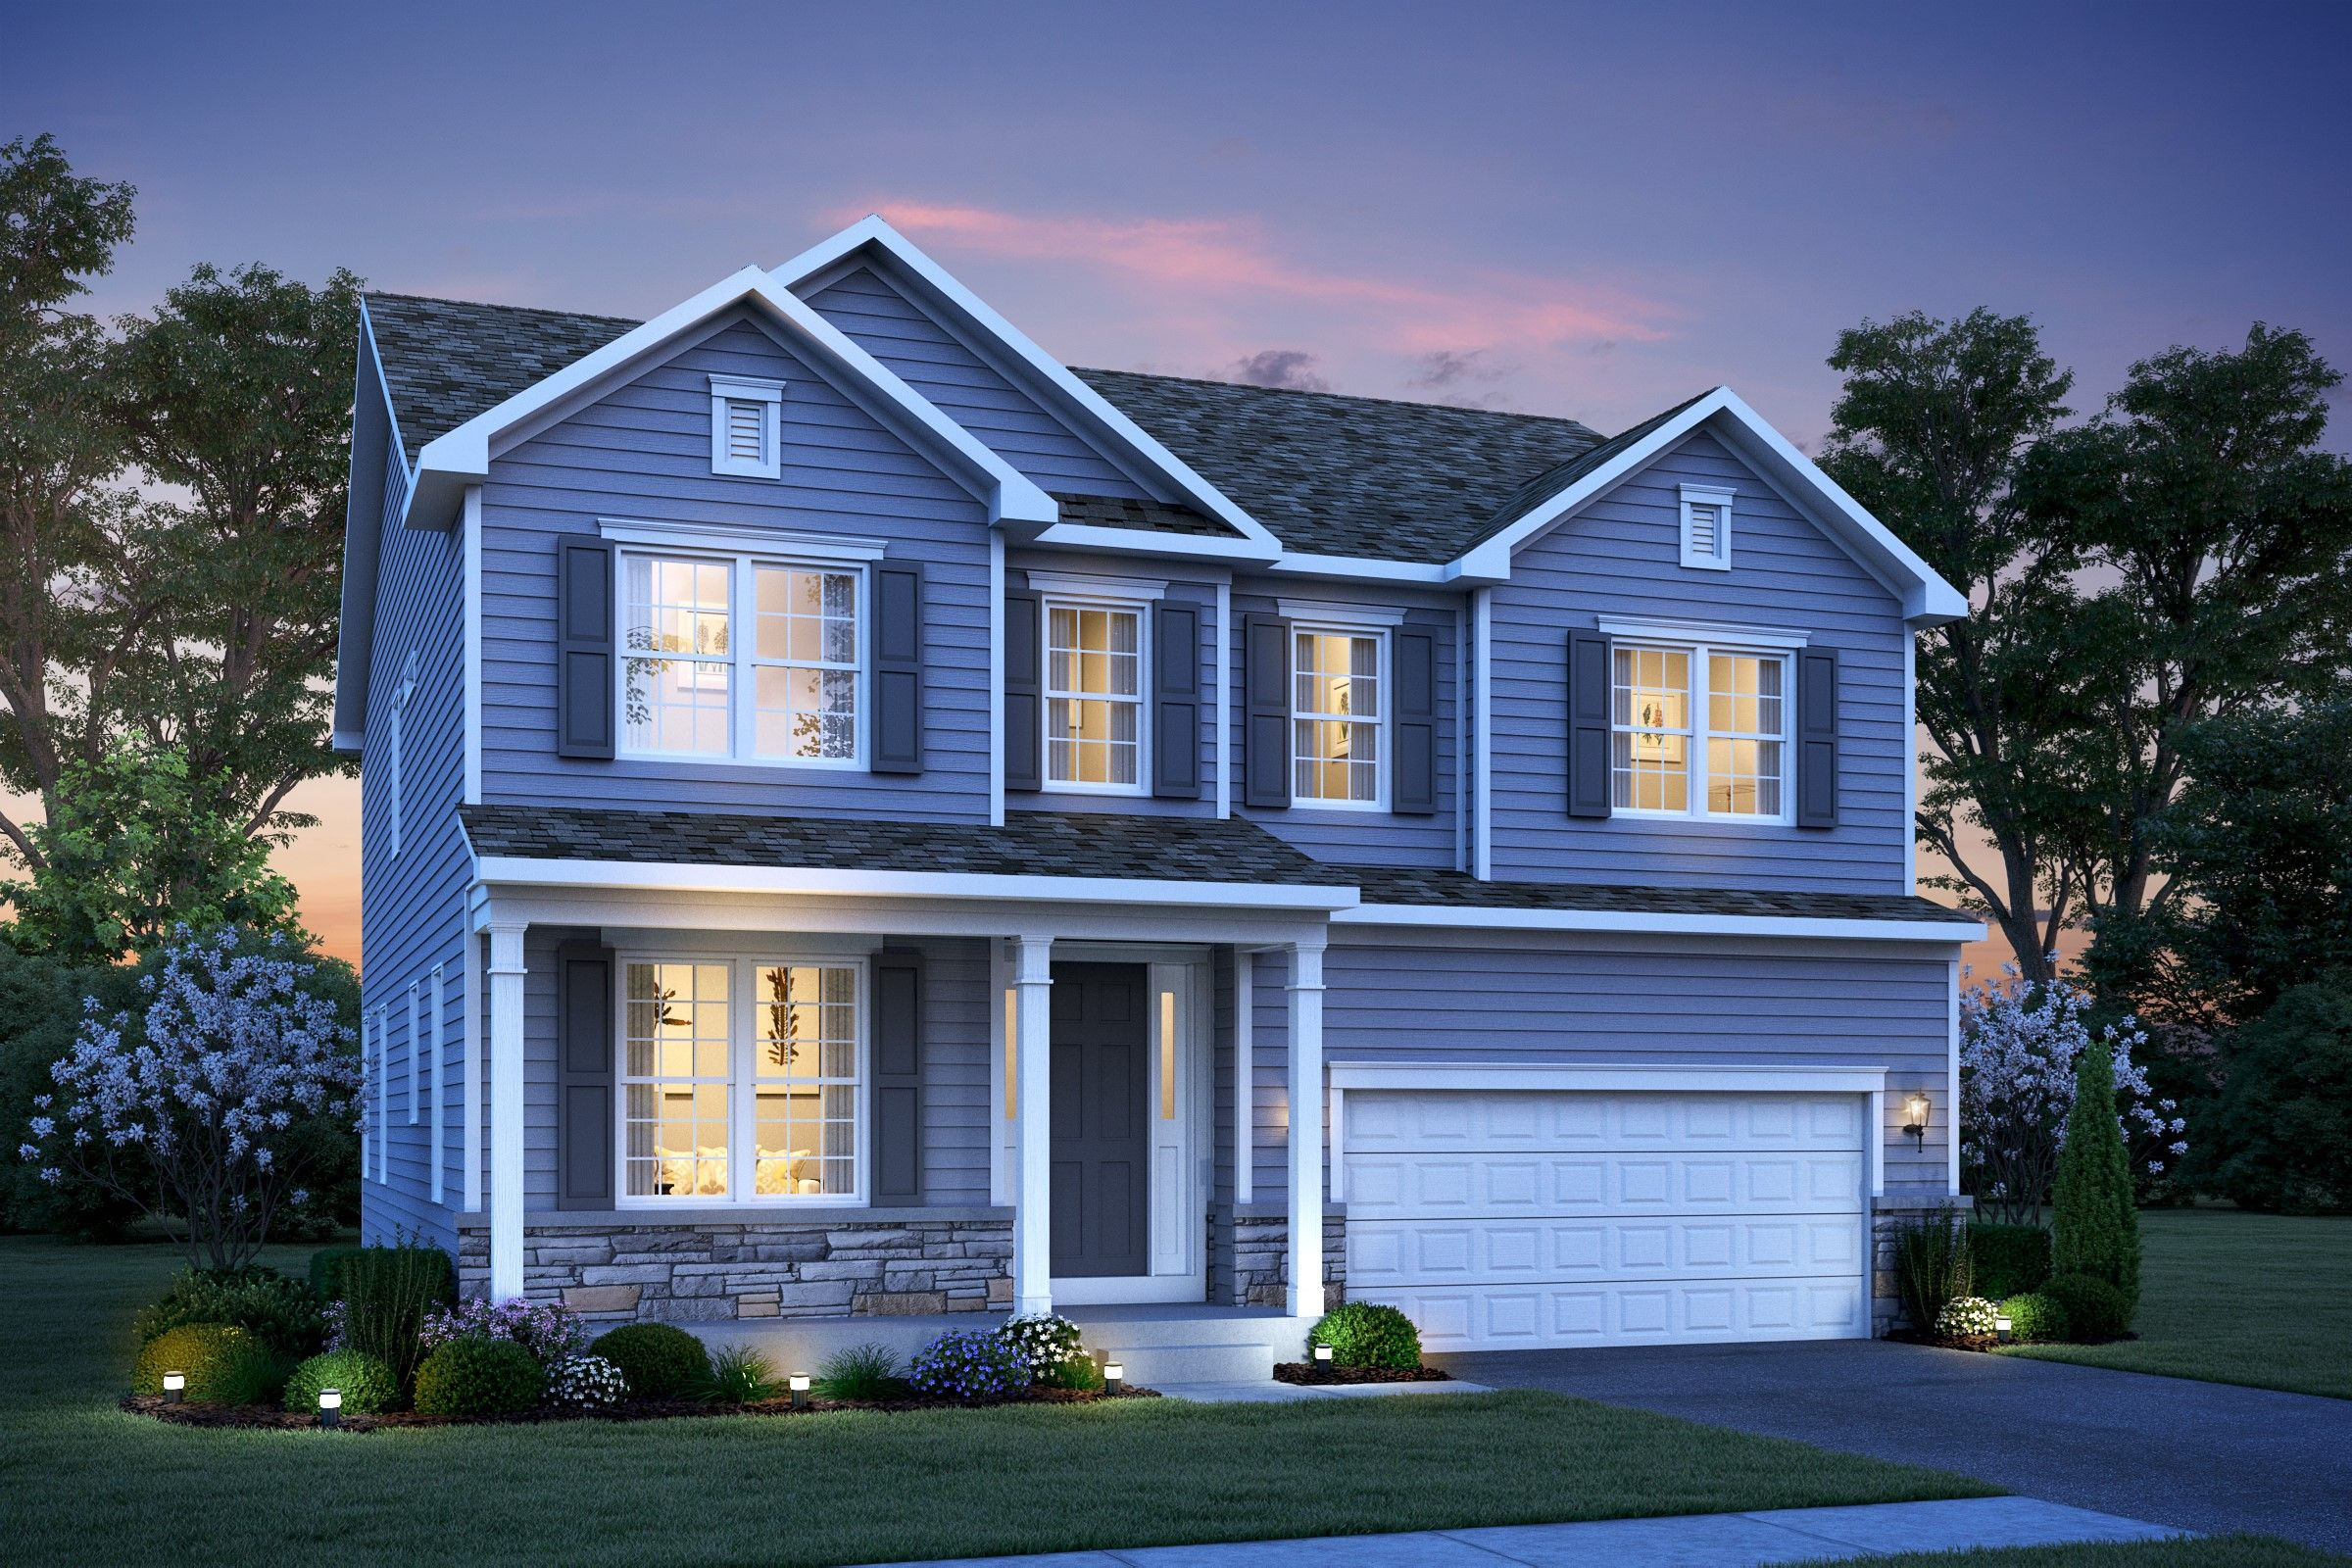 Single Family for Sale at Meadow Brook At Hillsborough - Brookdale Passe Court Hillsborough, New Jersey 08844 United States